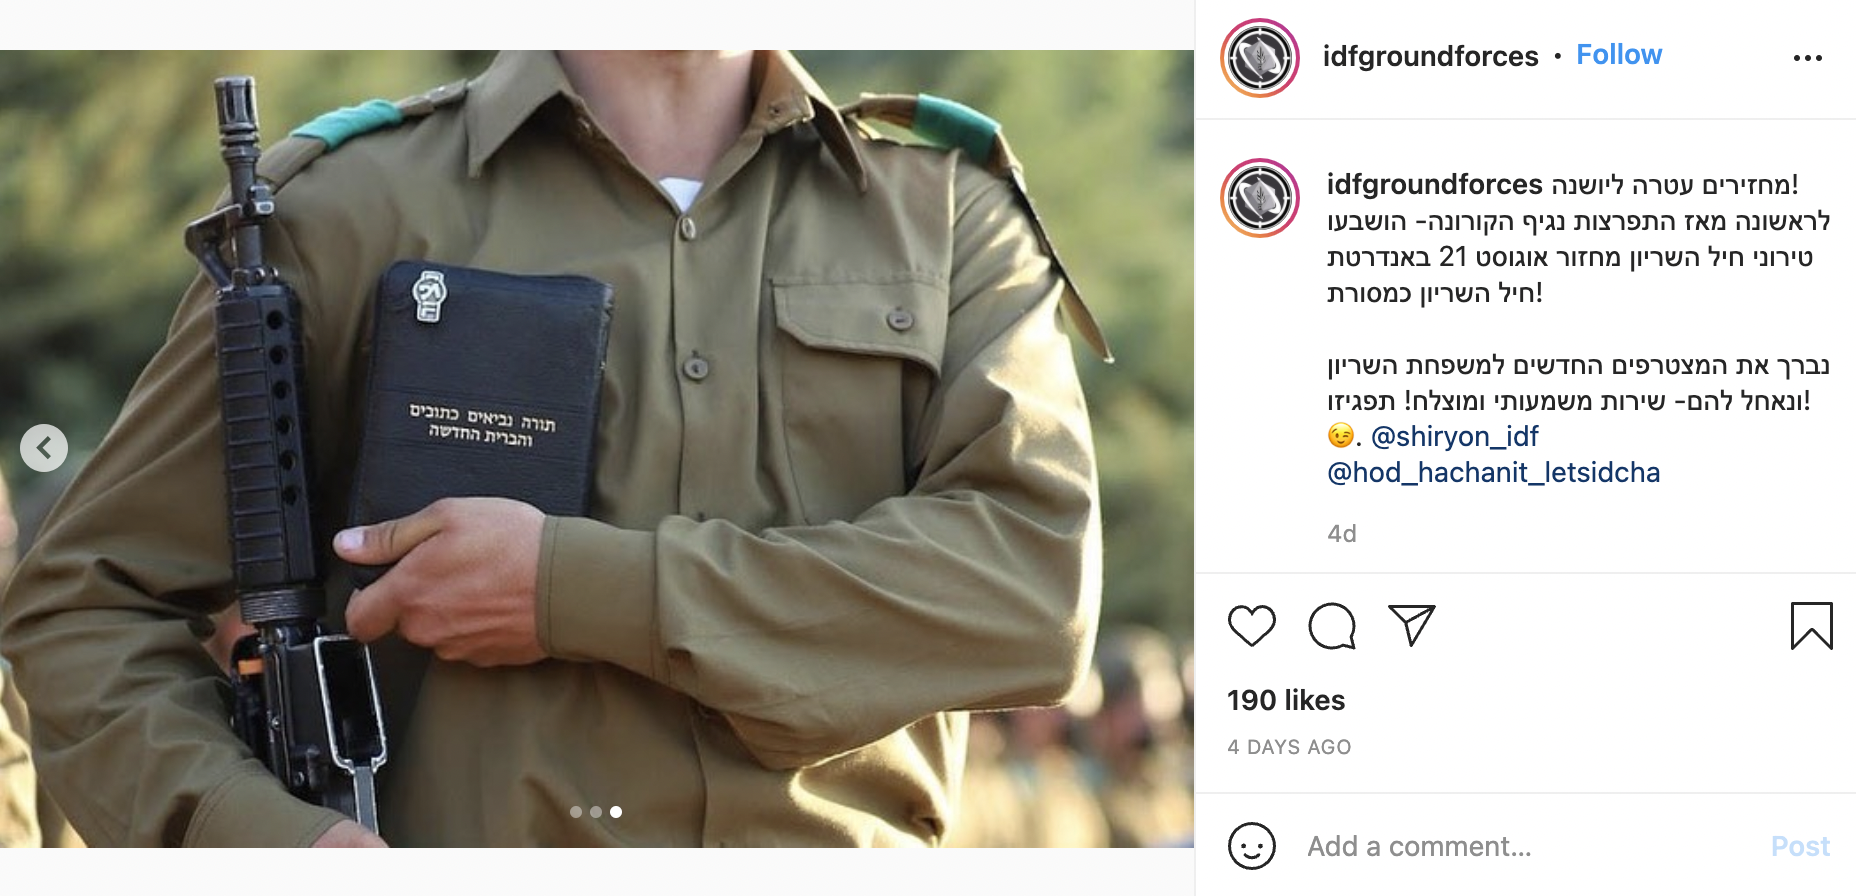 Photo of IDF soldier holding New Testament goes viral in Israel with accusations that missionaries have infiltrated the army